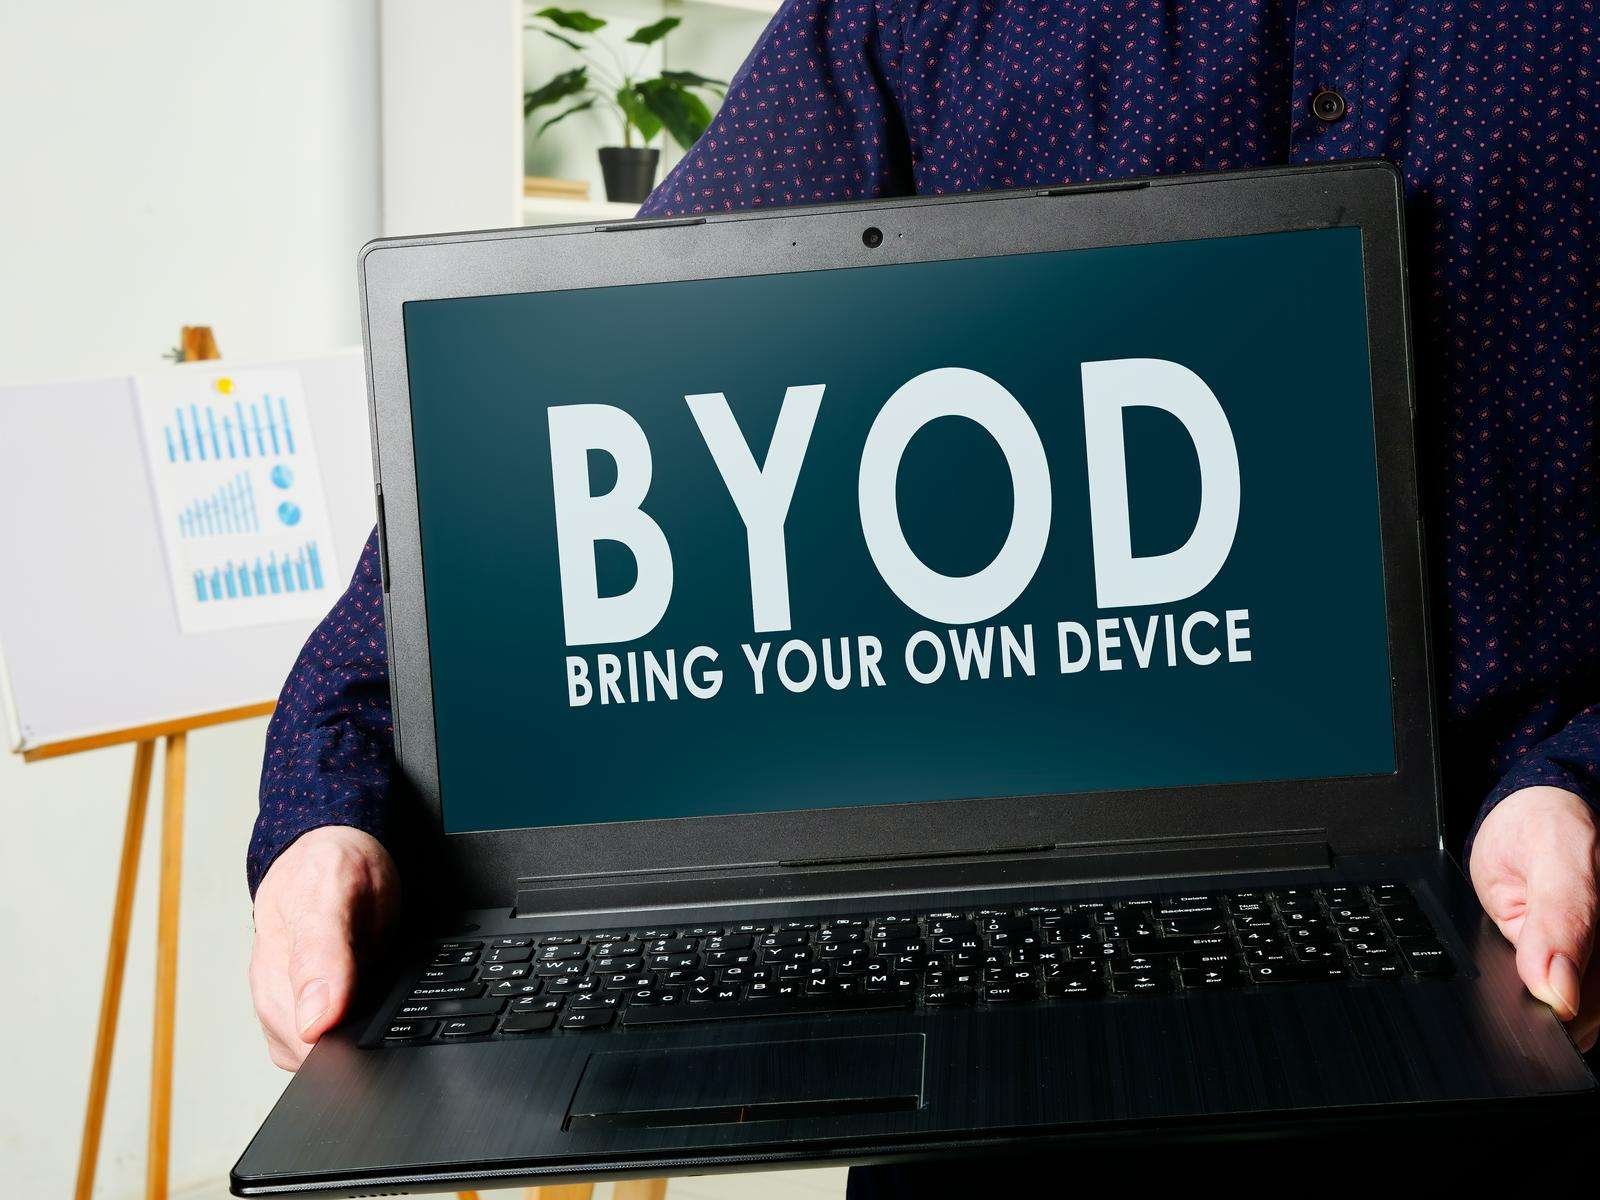 6 Common Pitfalls to Avoid in BYOD Security